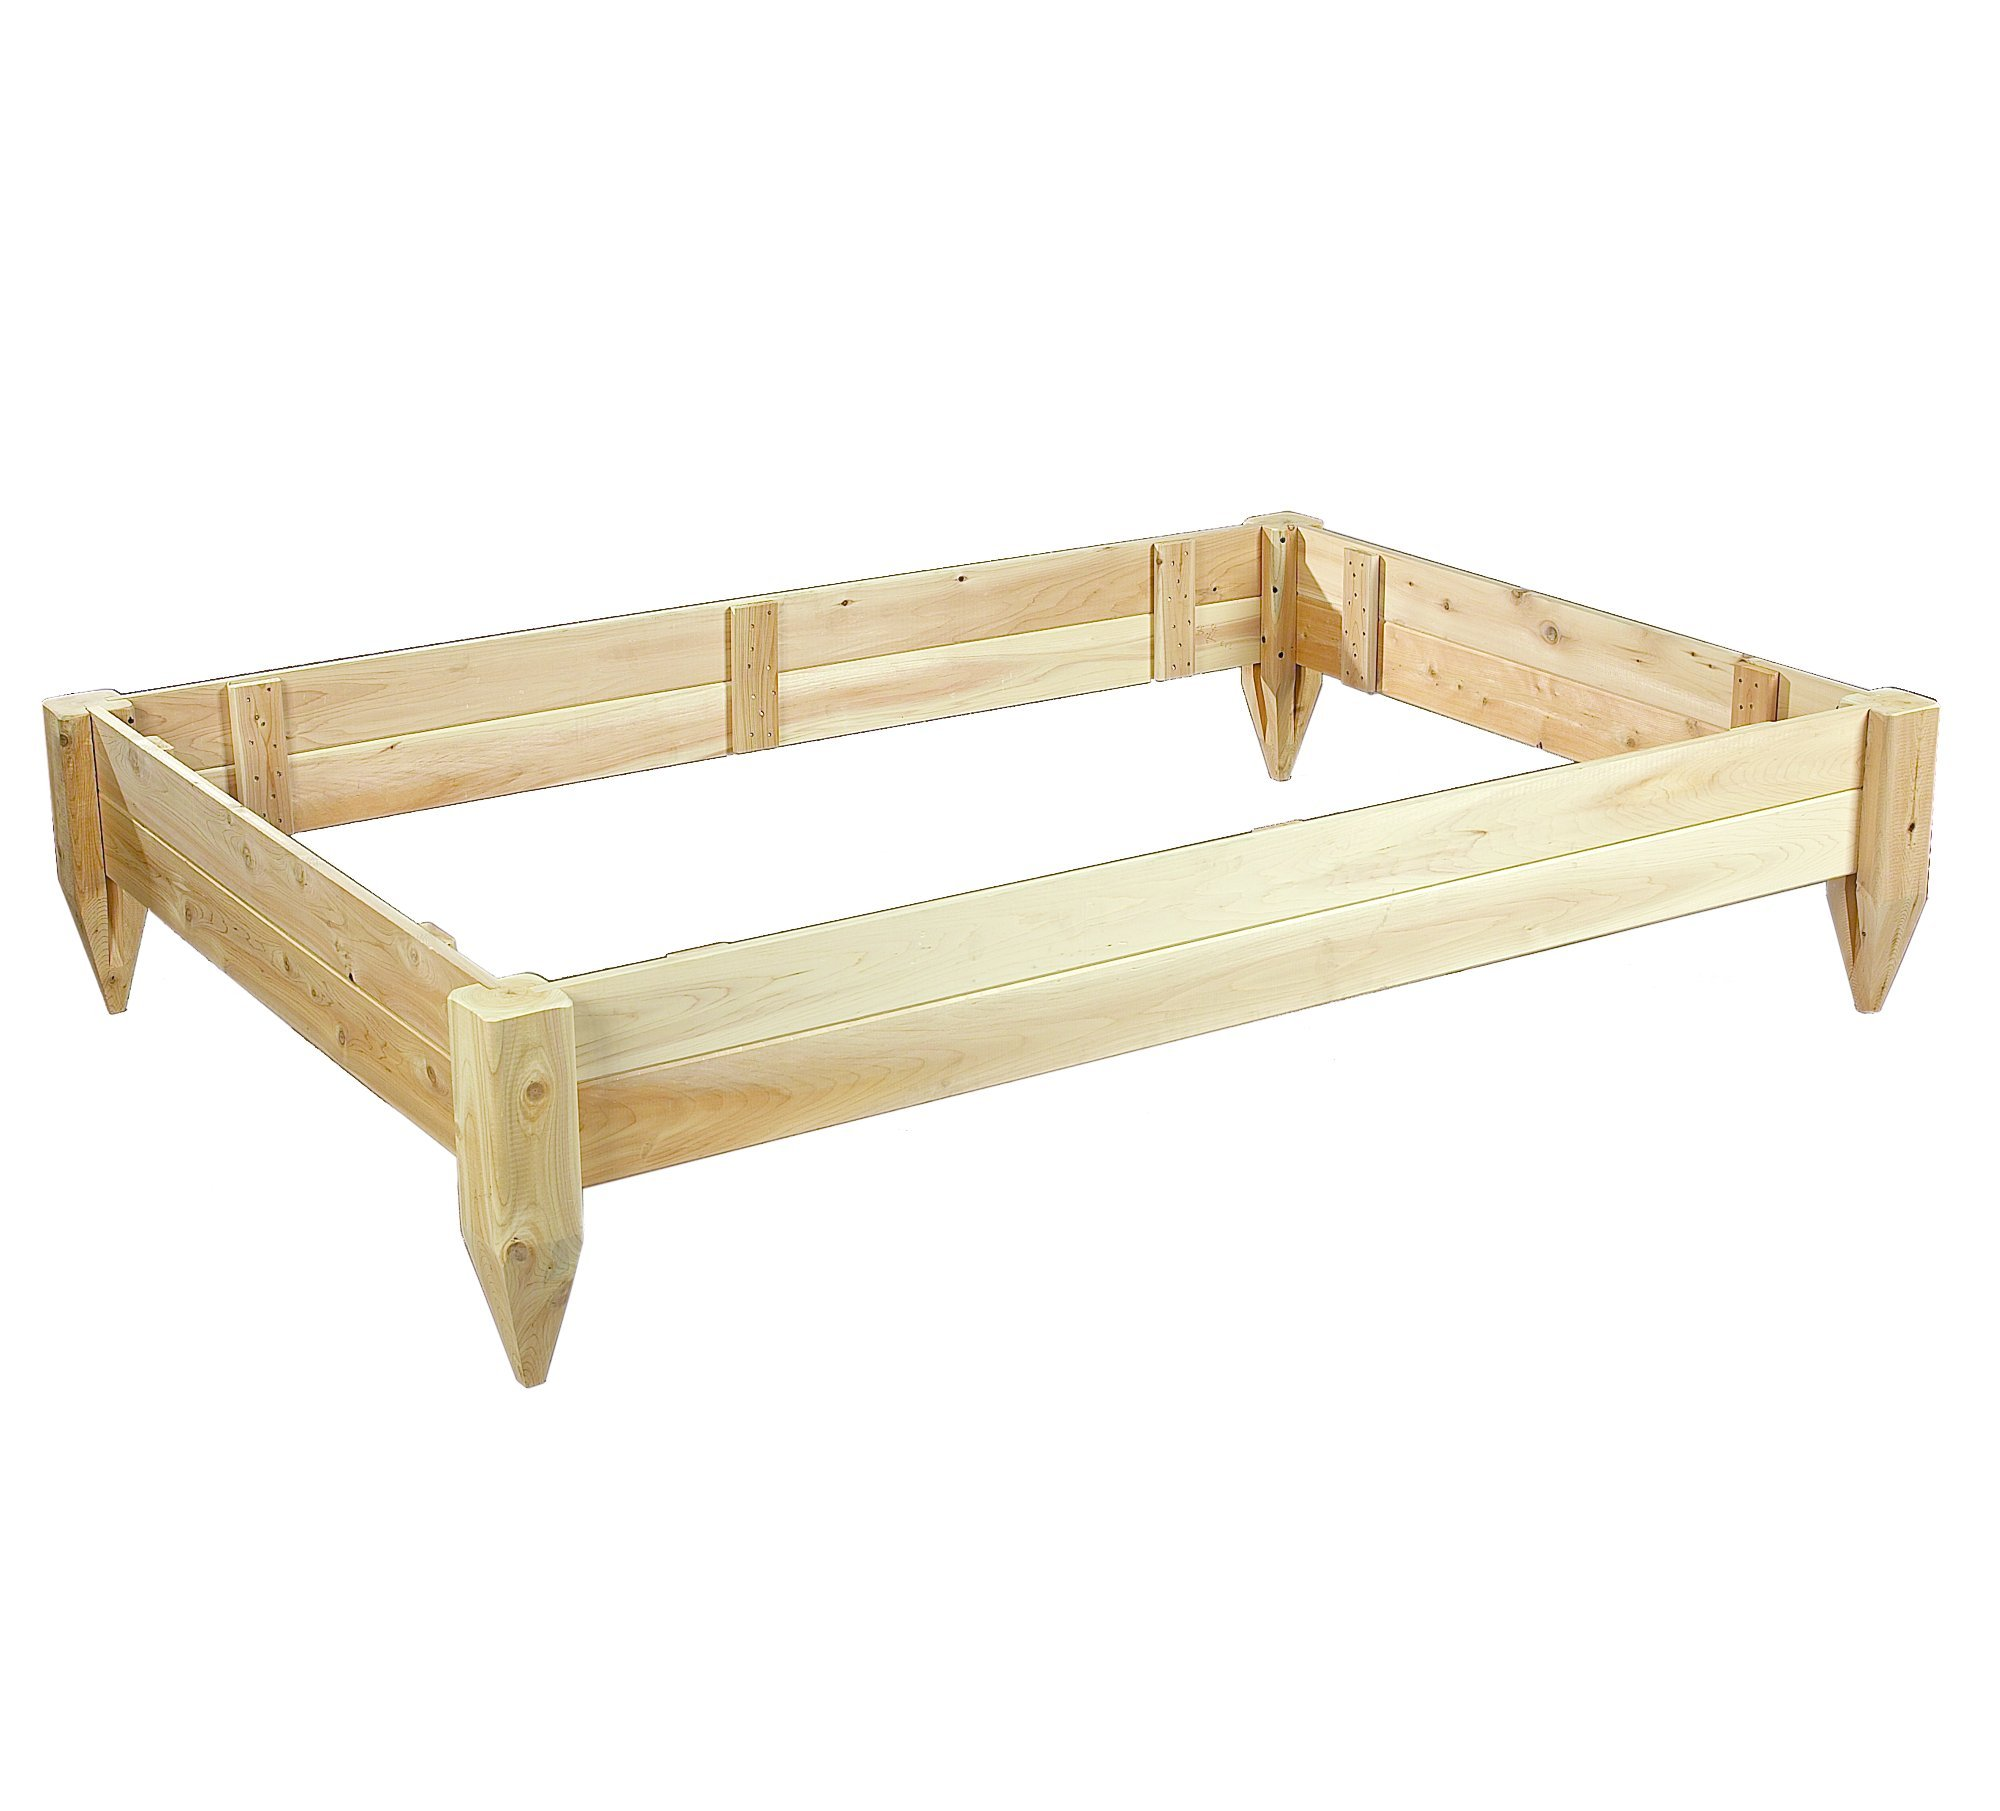 Cedarlooks 3114872 4 by 6-Feet Cedar Raised Bed Planter by Cedarlooks